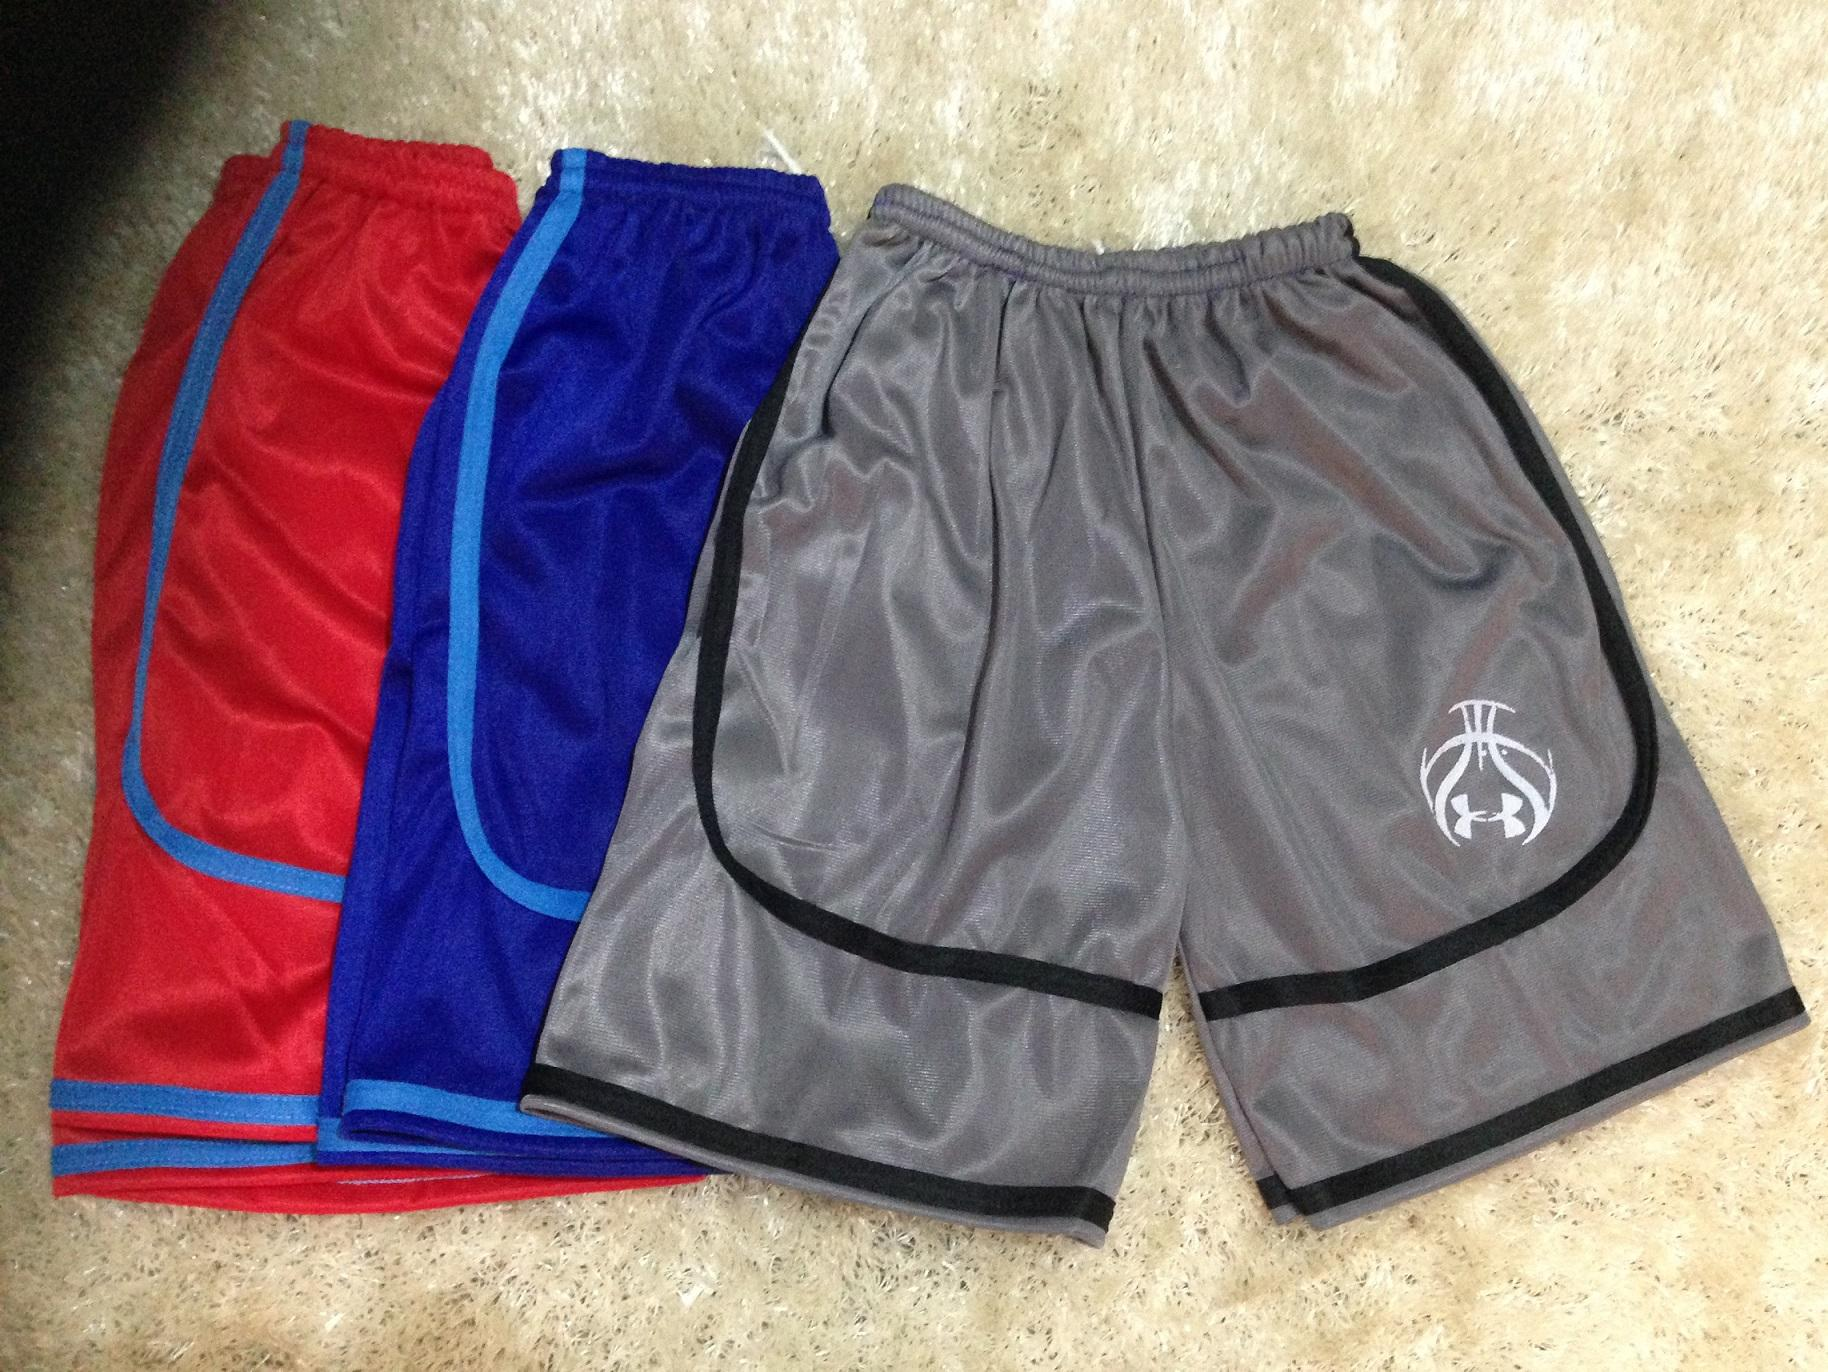 Printed Jersey Pull Up Shorts Assorted Prints 3-8yrs Old By Gmmerchandise.